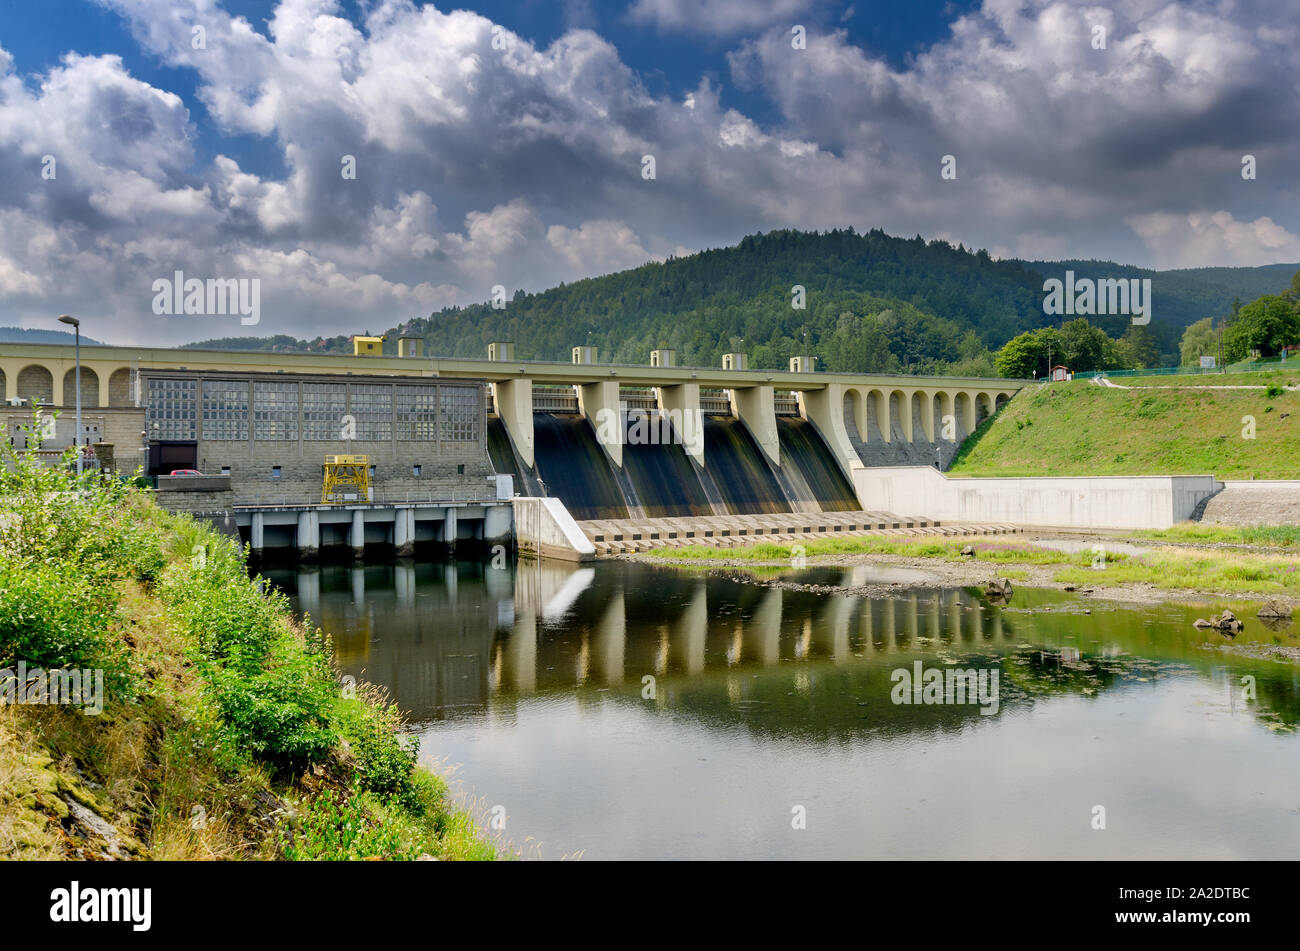 Miedzybrodzie Bialskie, Silesian province, Poland. Porabka dam and hydroelectric power station on Sola river. Beskid Maly mountains. Stock Photo